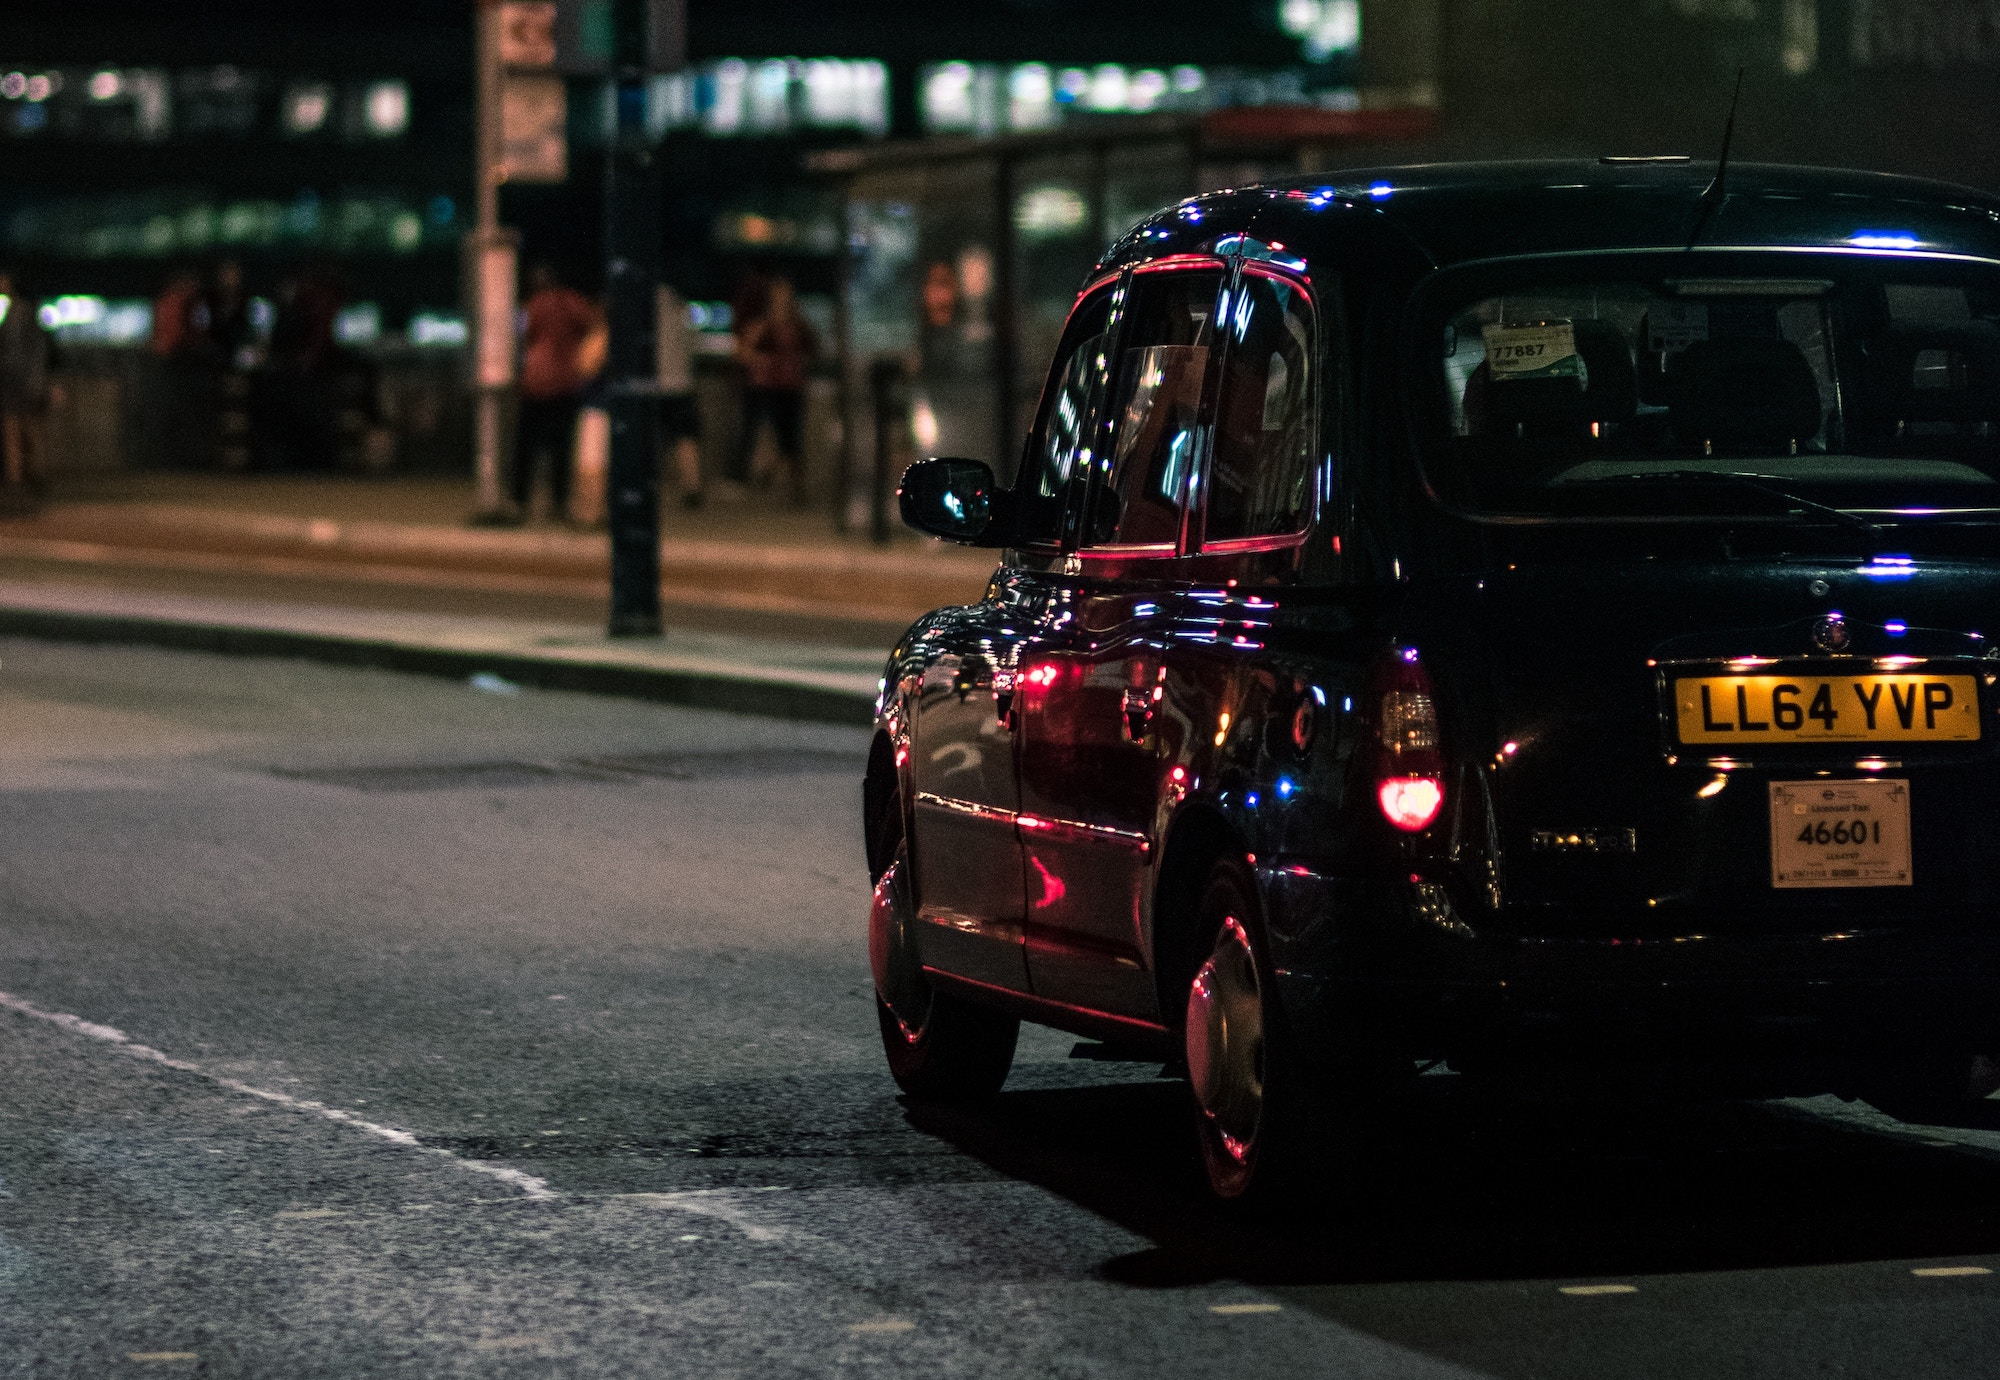 gatwick airport promotion taxi